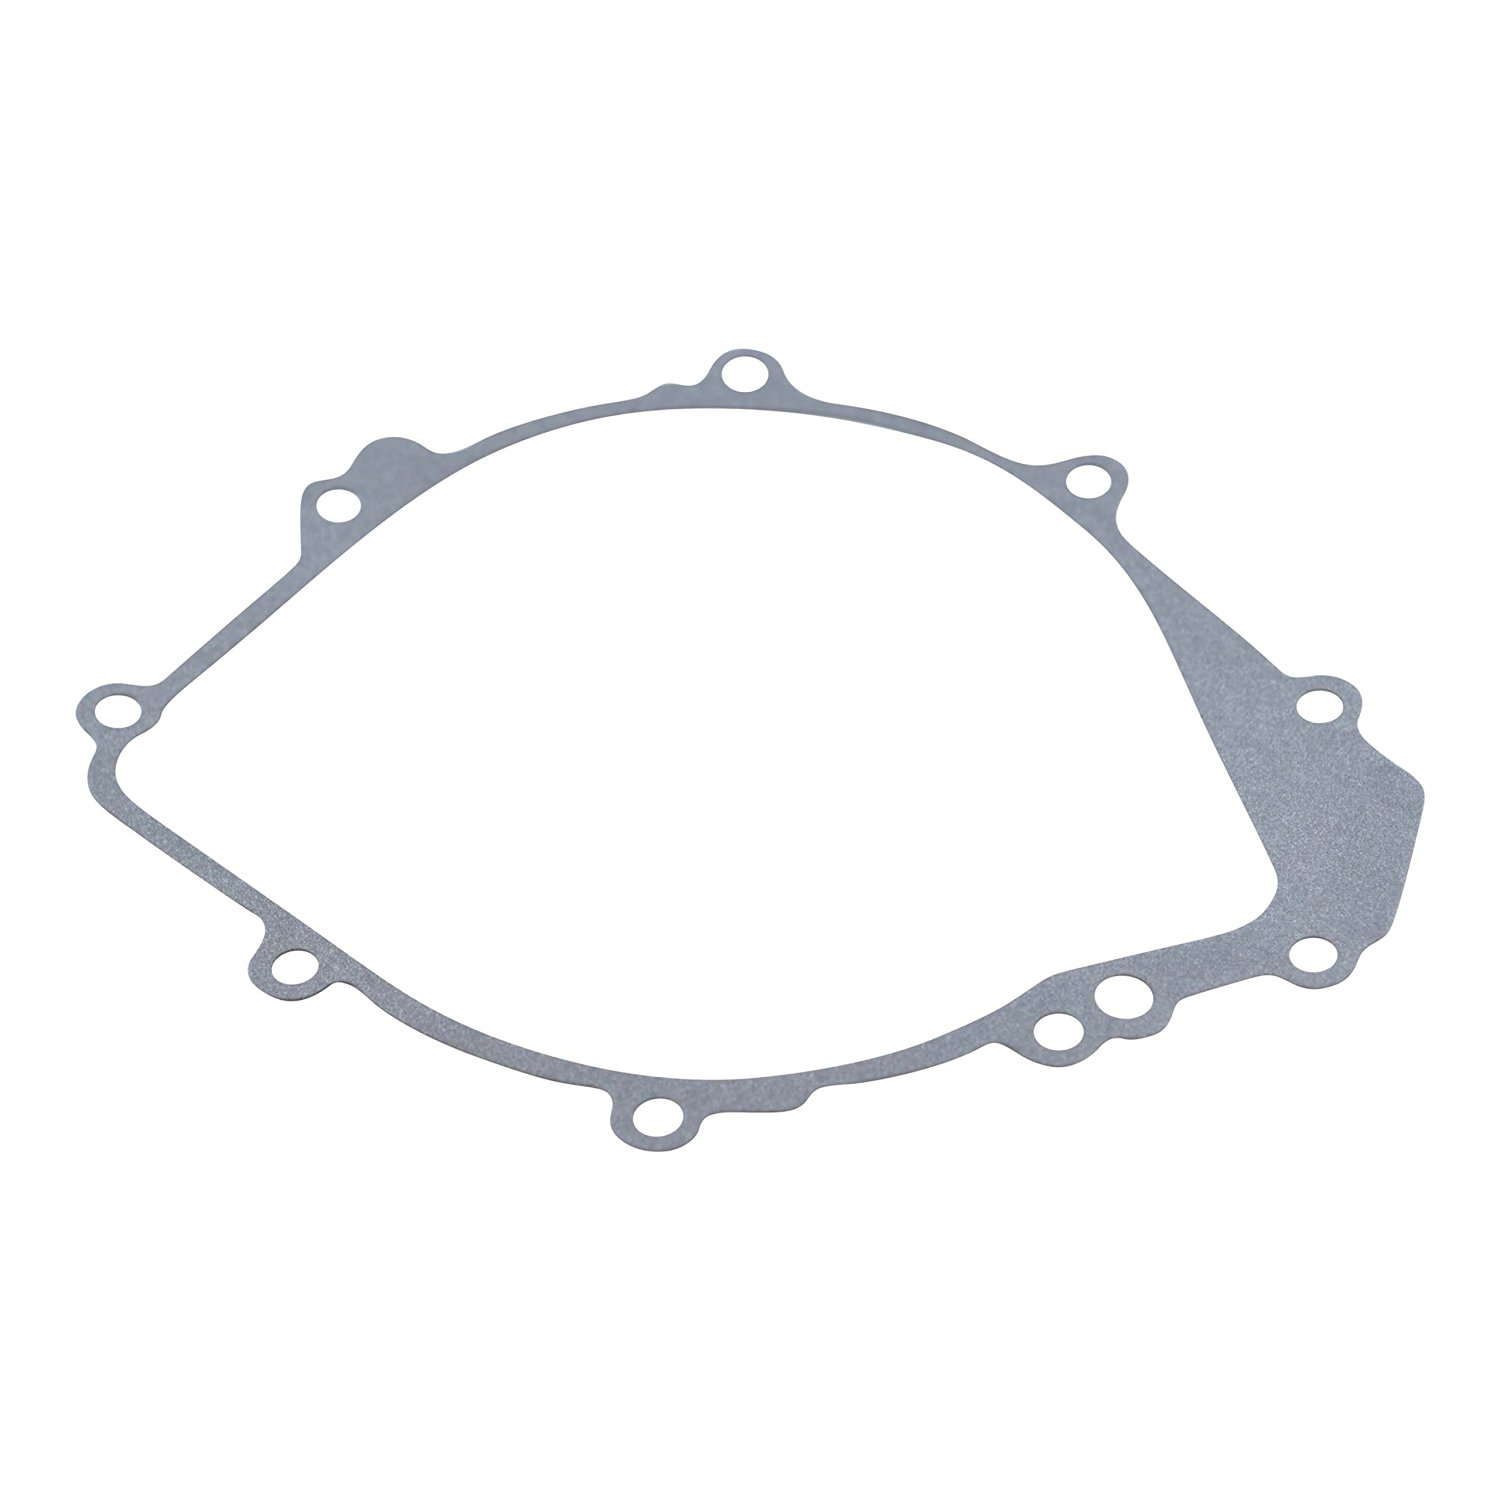 Stator Crankcase Cover Gasket for Yamaha YZF R1 FZS 1000 1998-2003